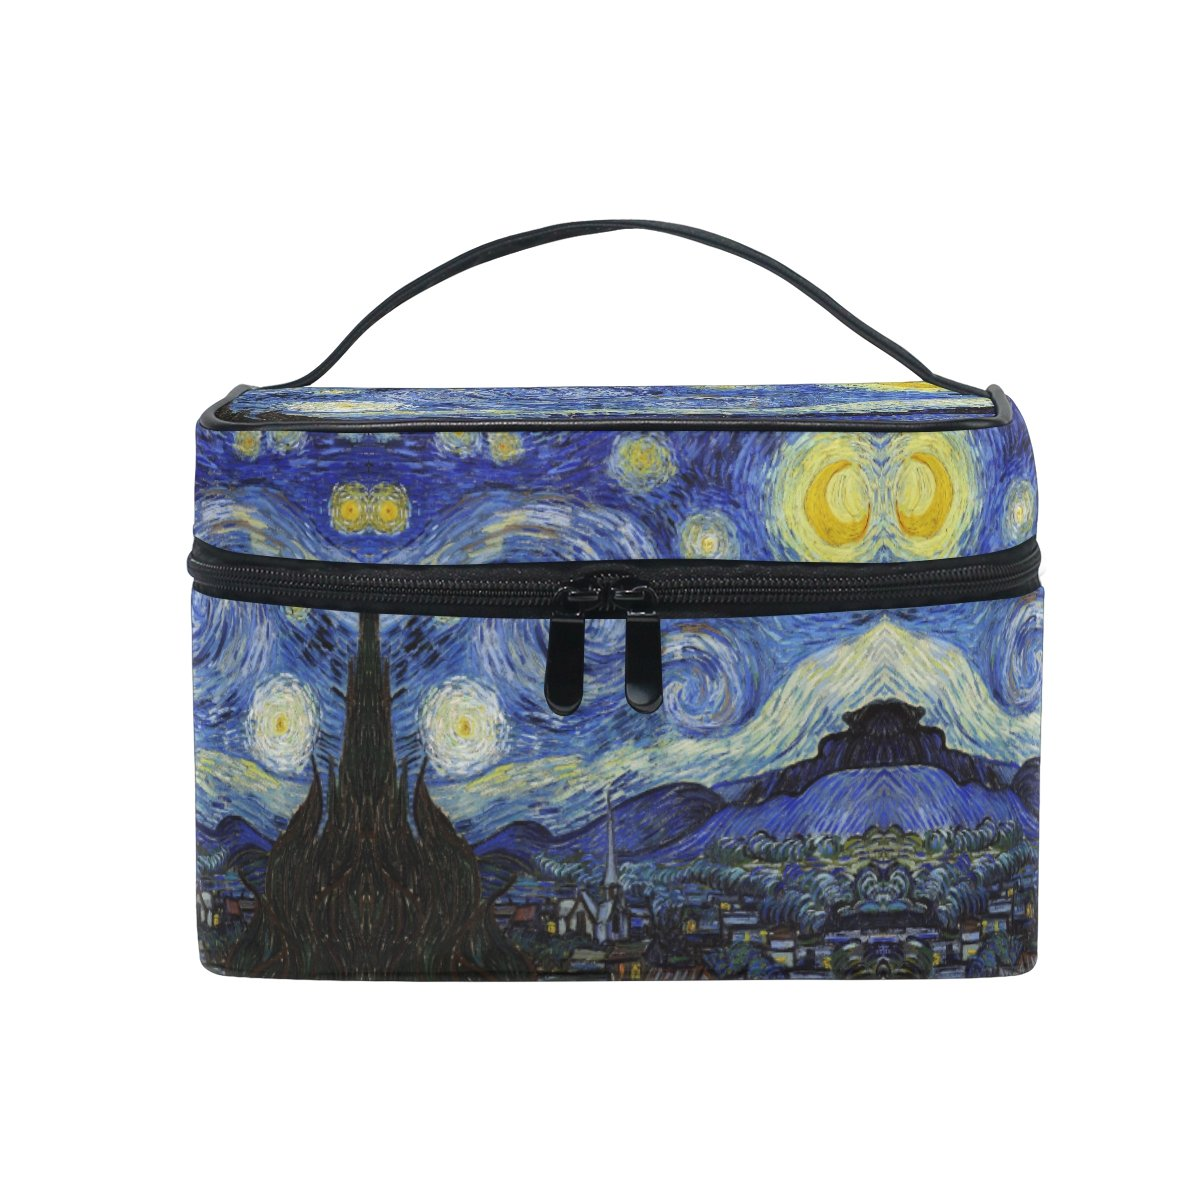 Makeup Bag Night Sky Painting Travel Cosmetic Bags Organizer Train Case Toiletry Make Up Pouch